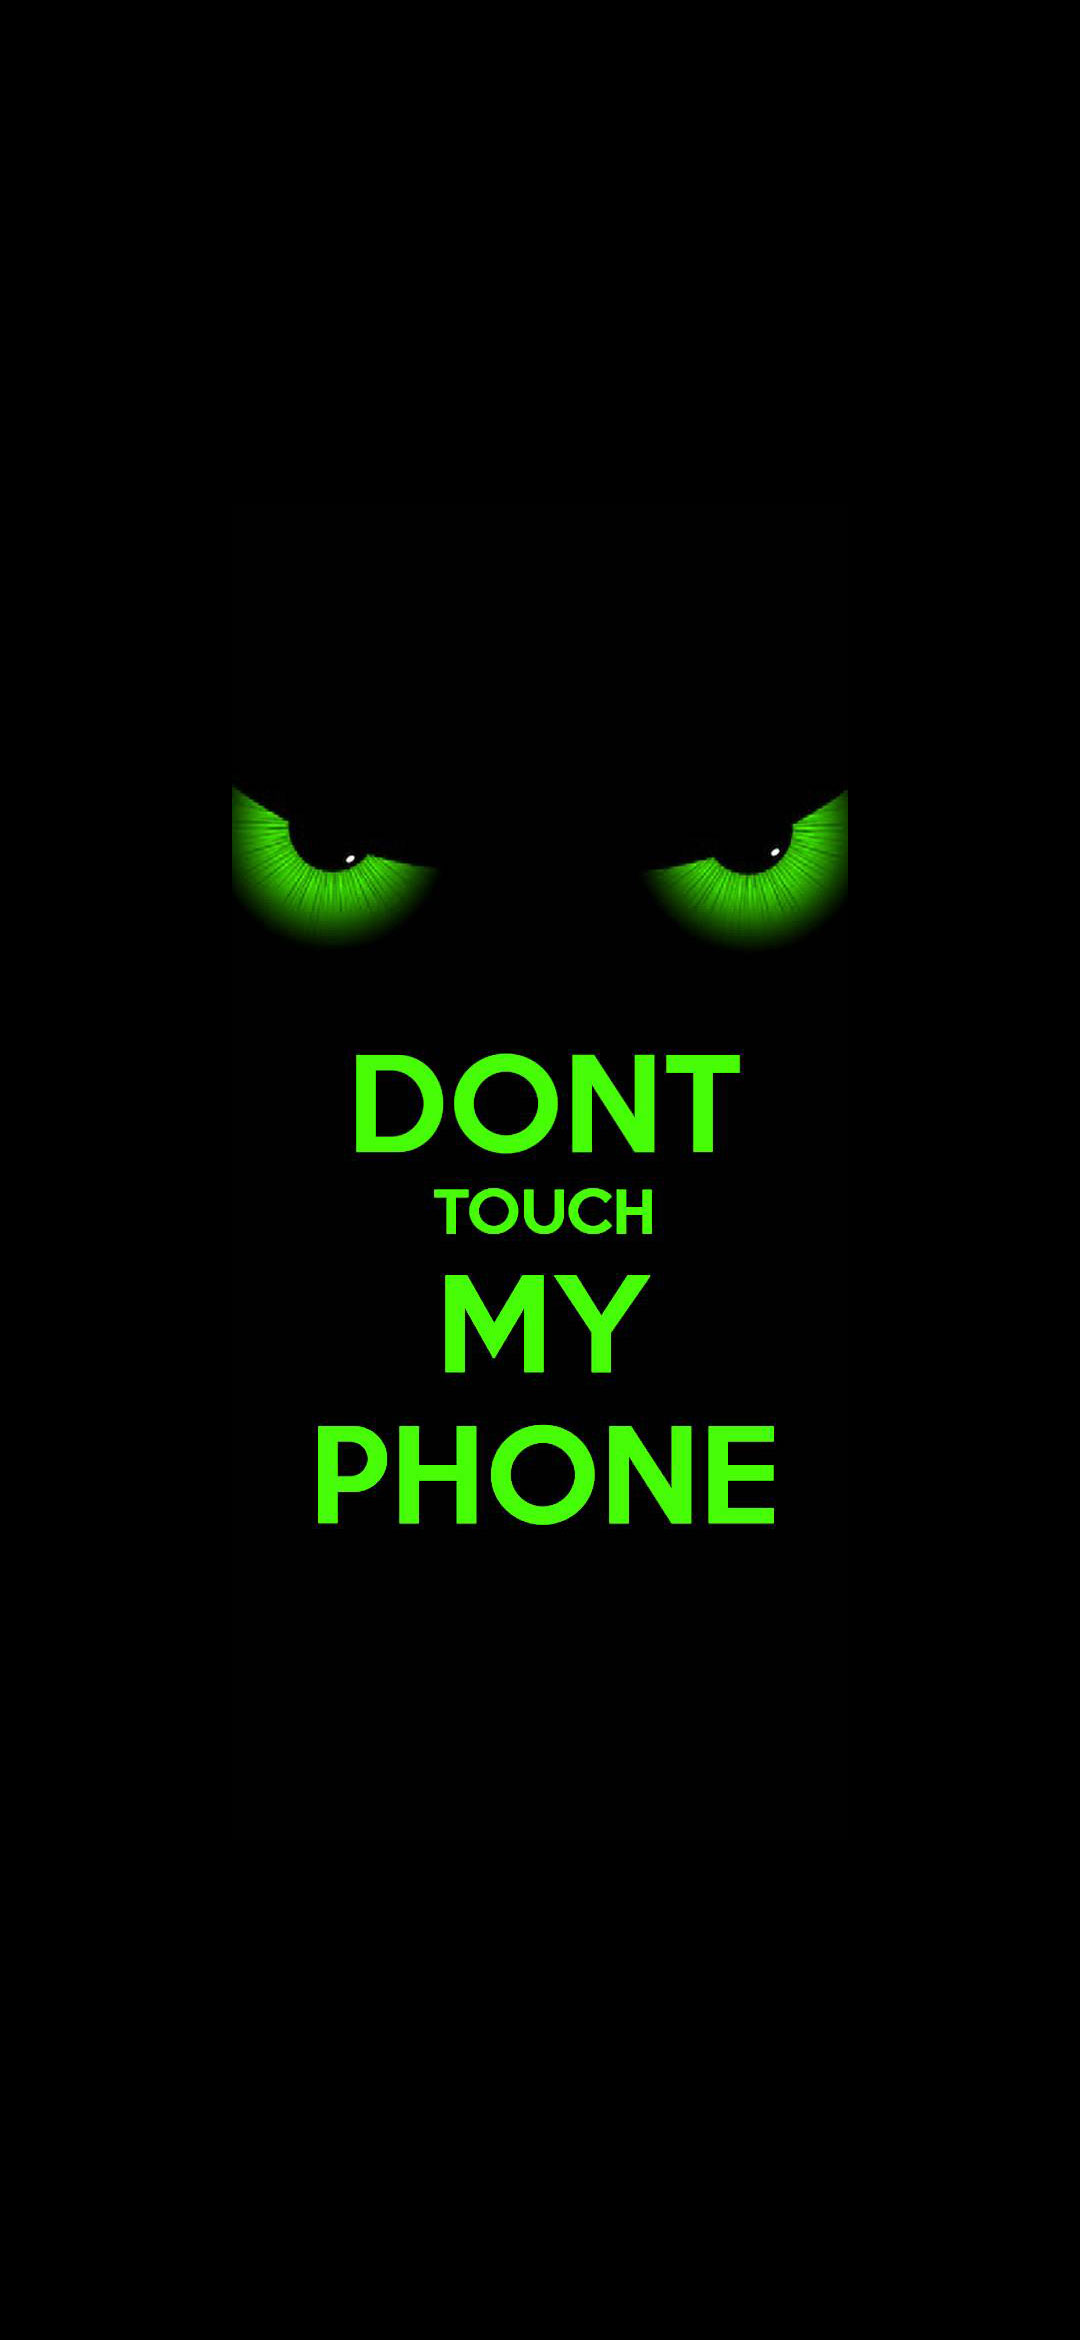 Dont Touch Scary Lock Screen Wallpaper 1080x2340